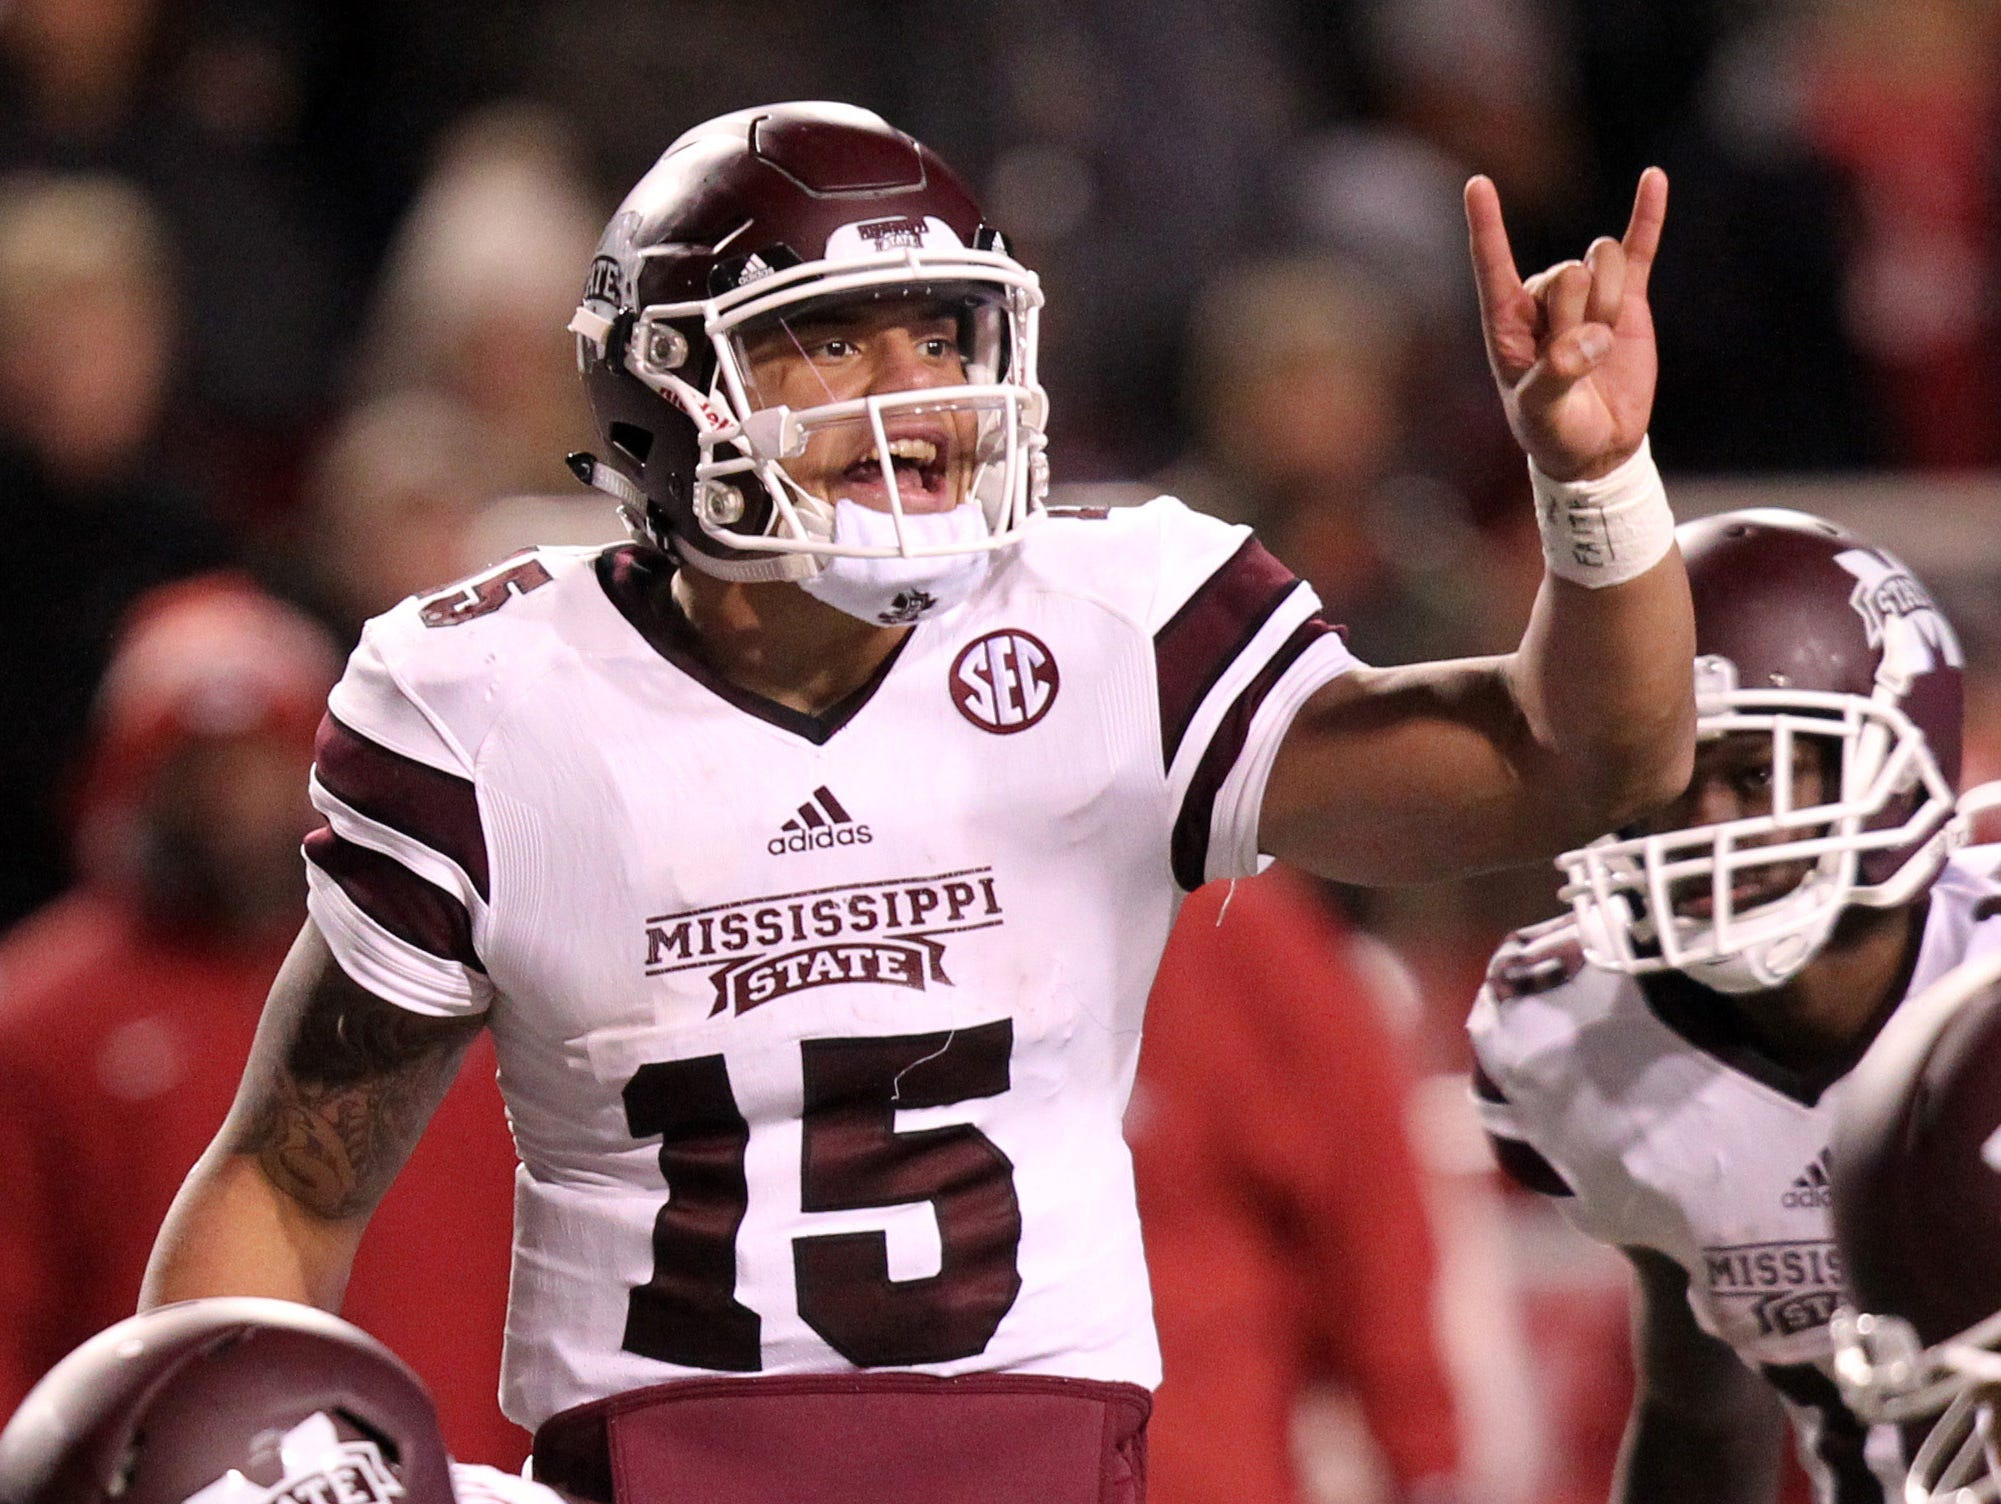 Mississippi State's Dak Prescott gives the Bulldogs an advantage when their offense is on the field.